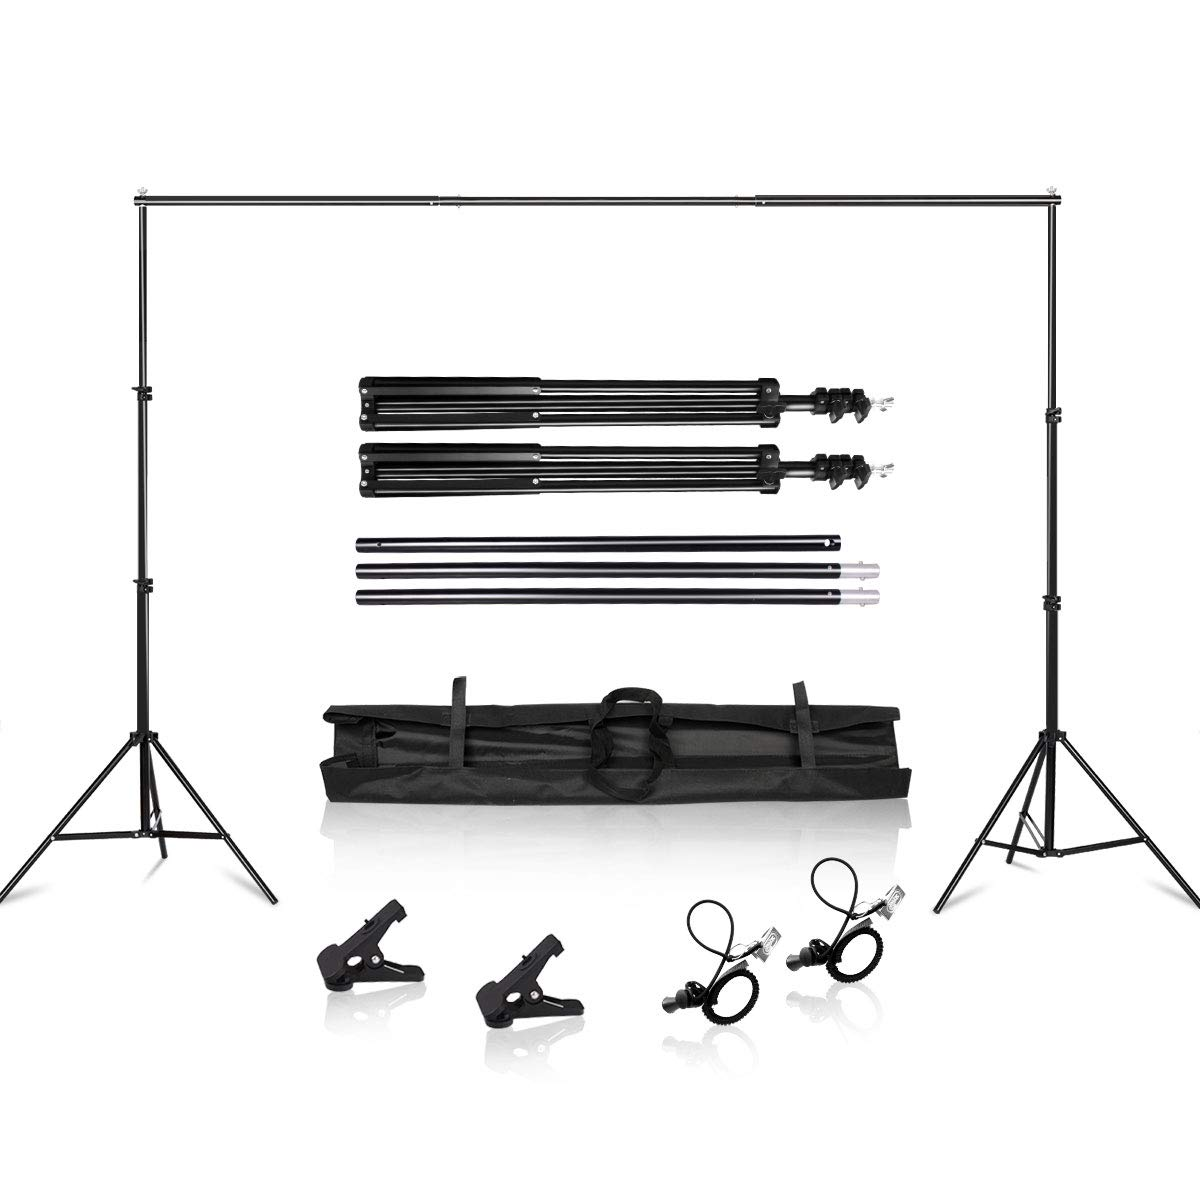 Heavy Duty Background Stand, 2x2M Backdrop Support System Kit with Carry Bag for Photography Photo Video Studio,Photography Studio